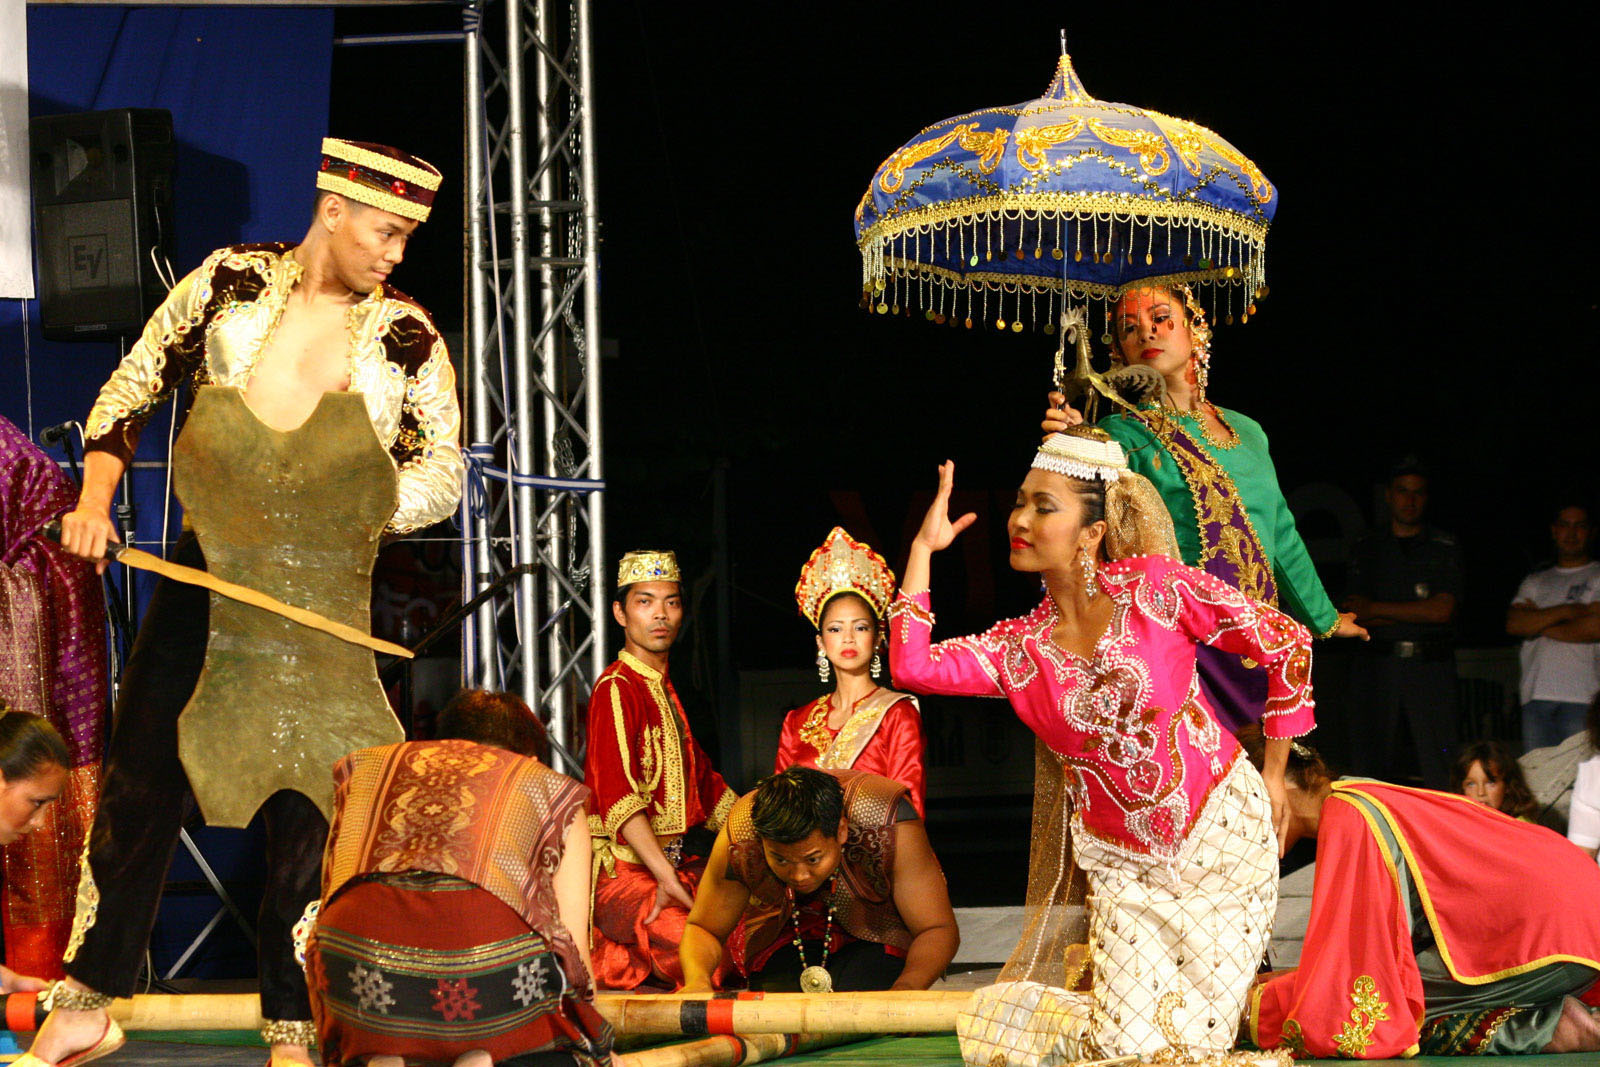 Sa kasingkil is a famous dance of the maranao people of lake lanao